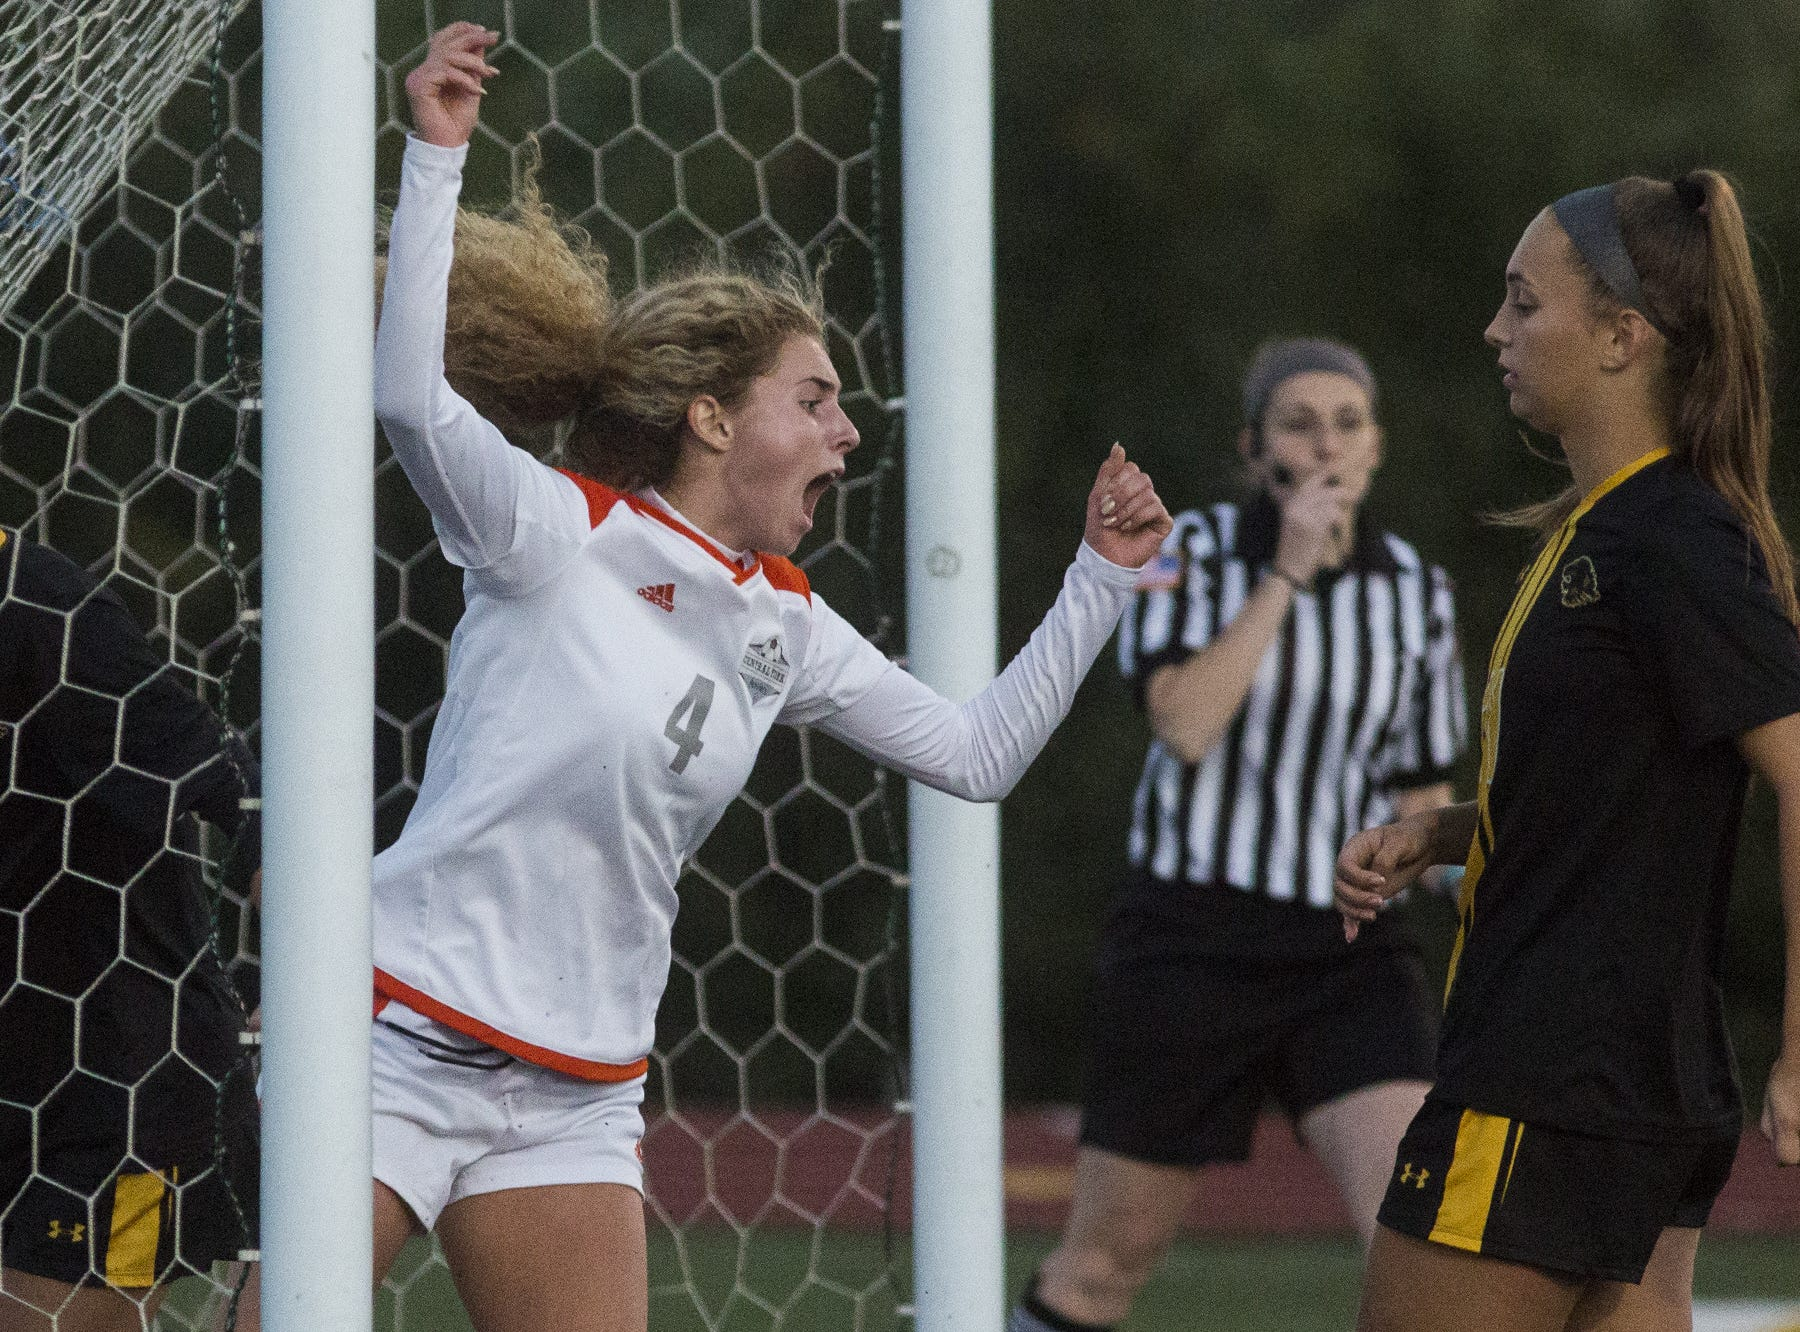 Central York's Anya Schnetzka celebrates after her teammate, Katelyn Mair, not pictured, scores a goal. Central York defeats Red Lion 1-0 in the YAIAA girls' soccer championship game at Northeastern High School in Manchester, Saturday, October 20, 2018.